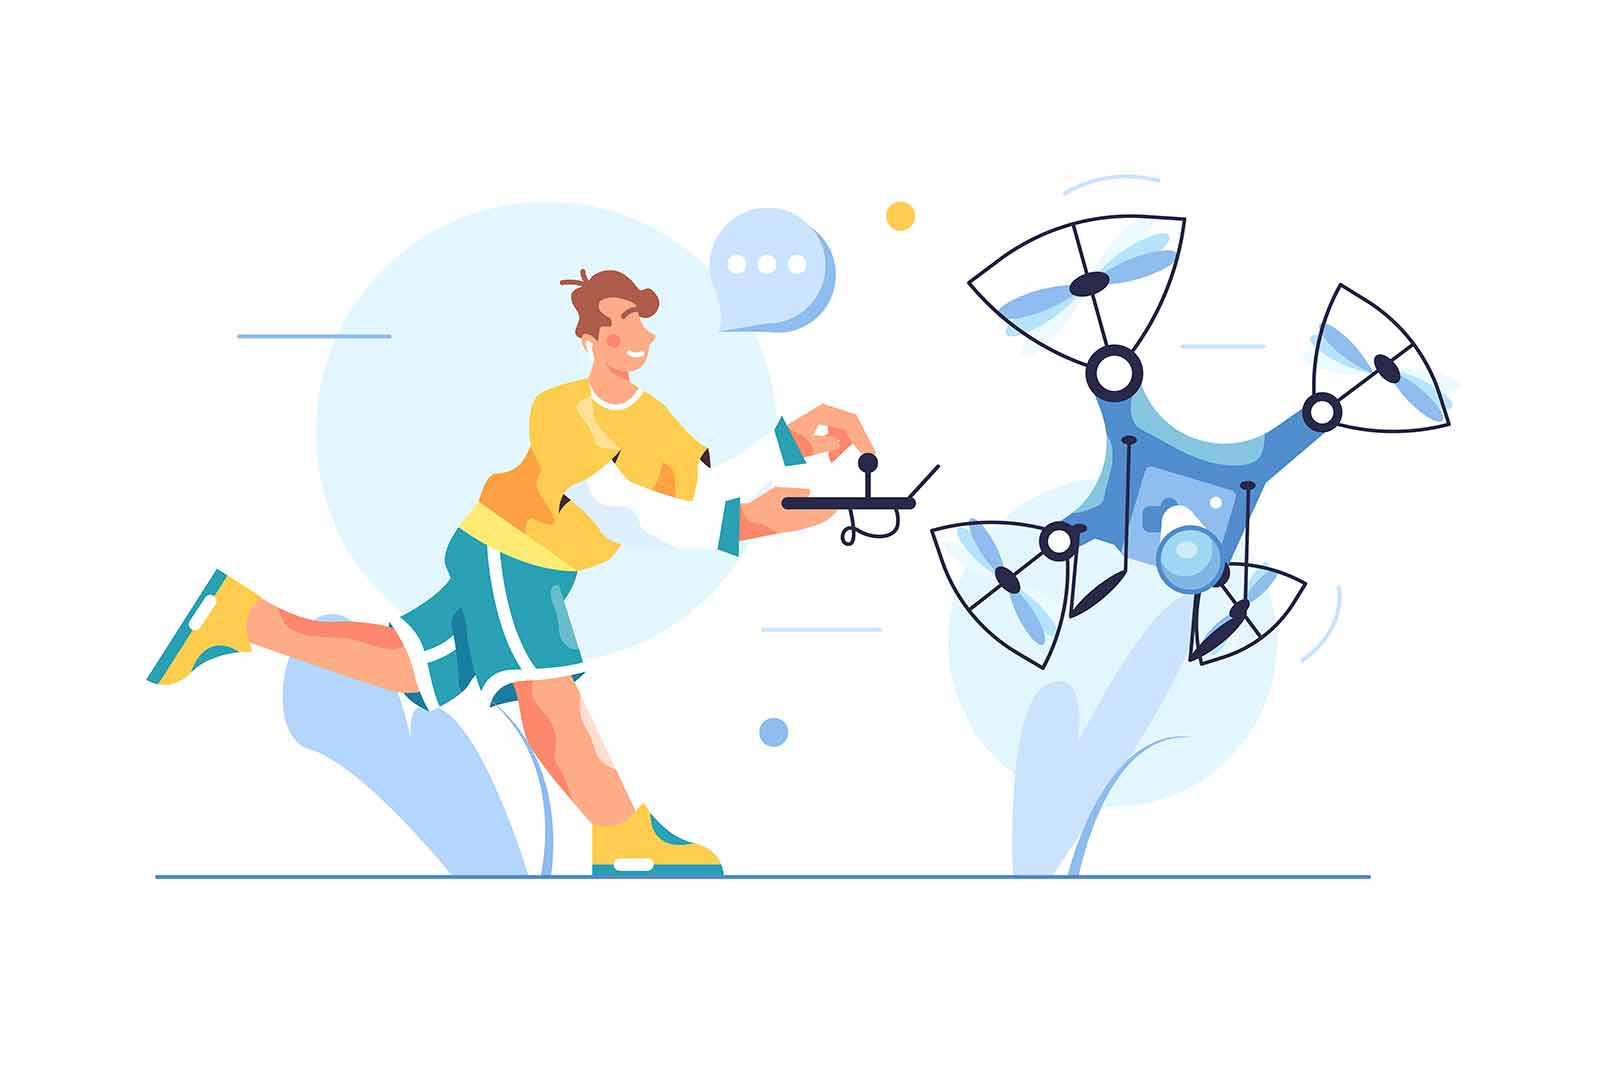 The guy controls a drone with a video camera, guy runs with control panel isolated on white background, flat vector illustration